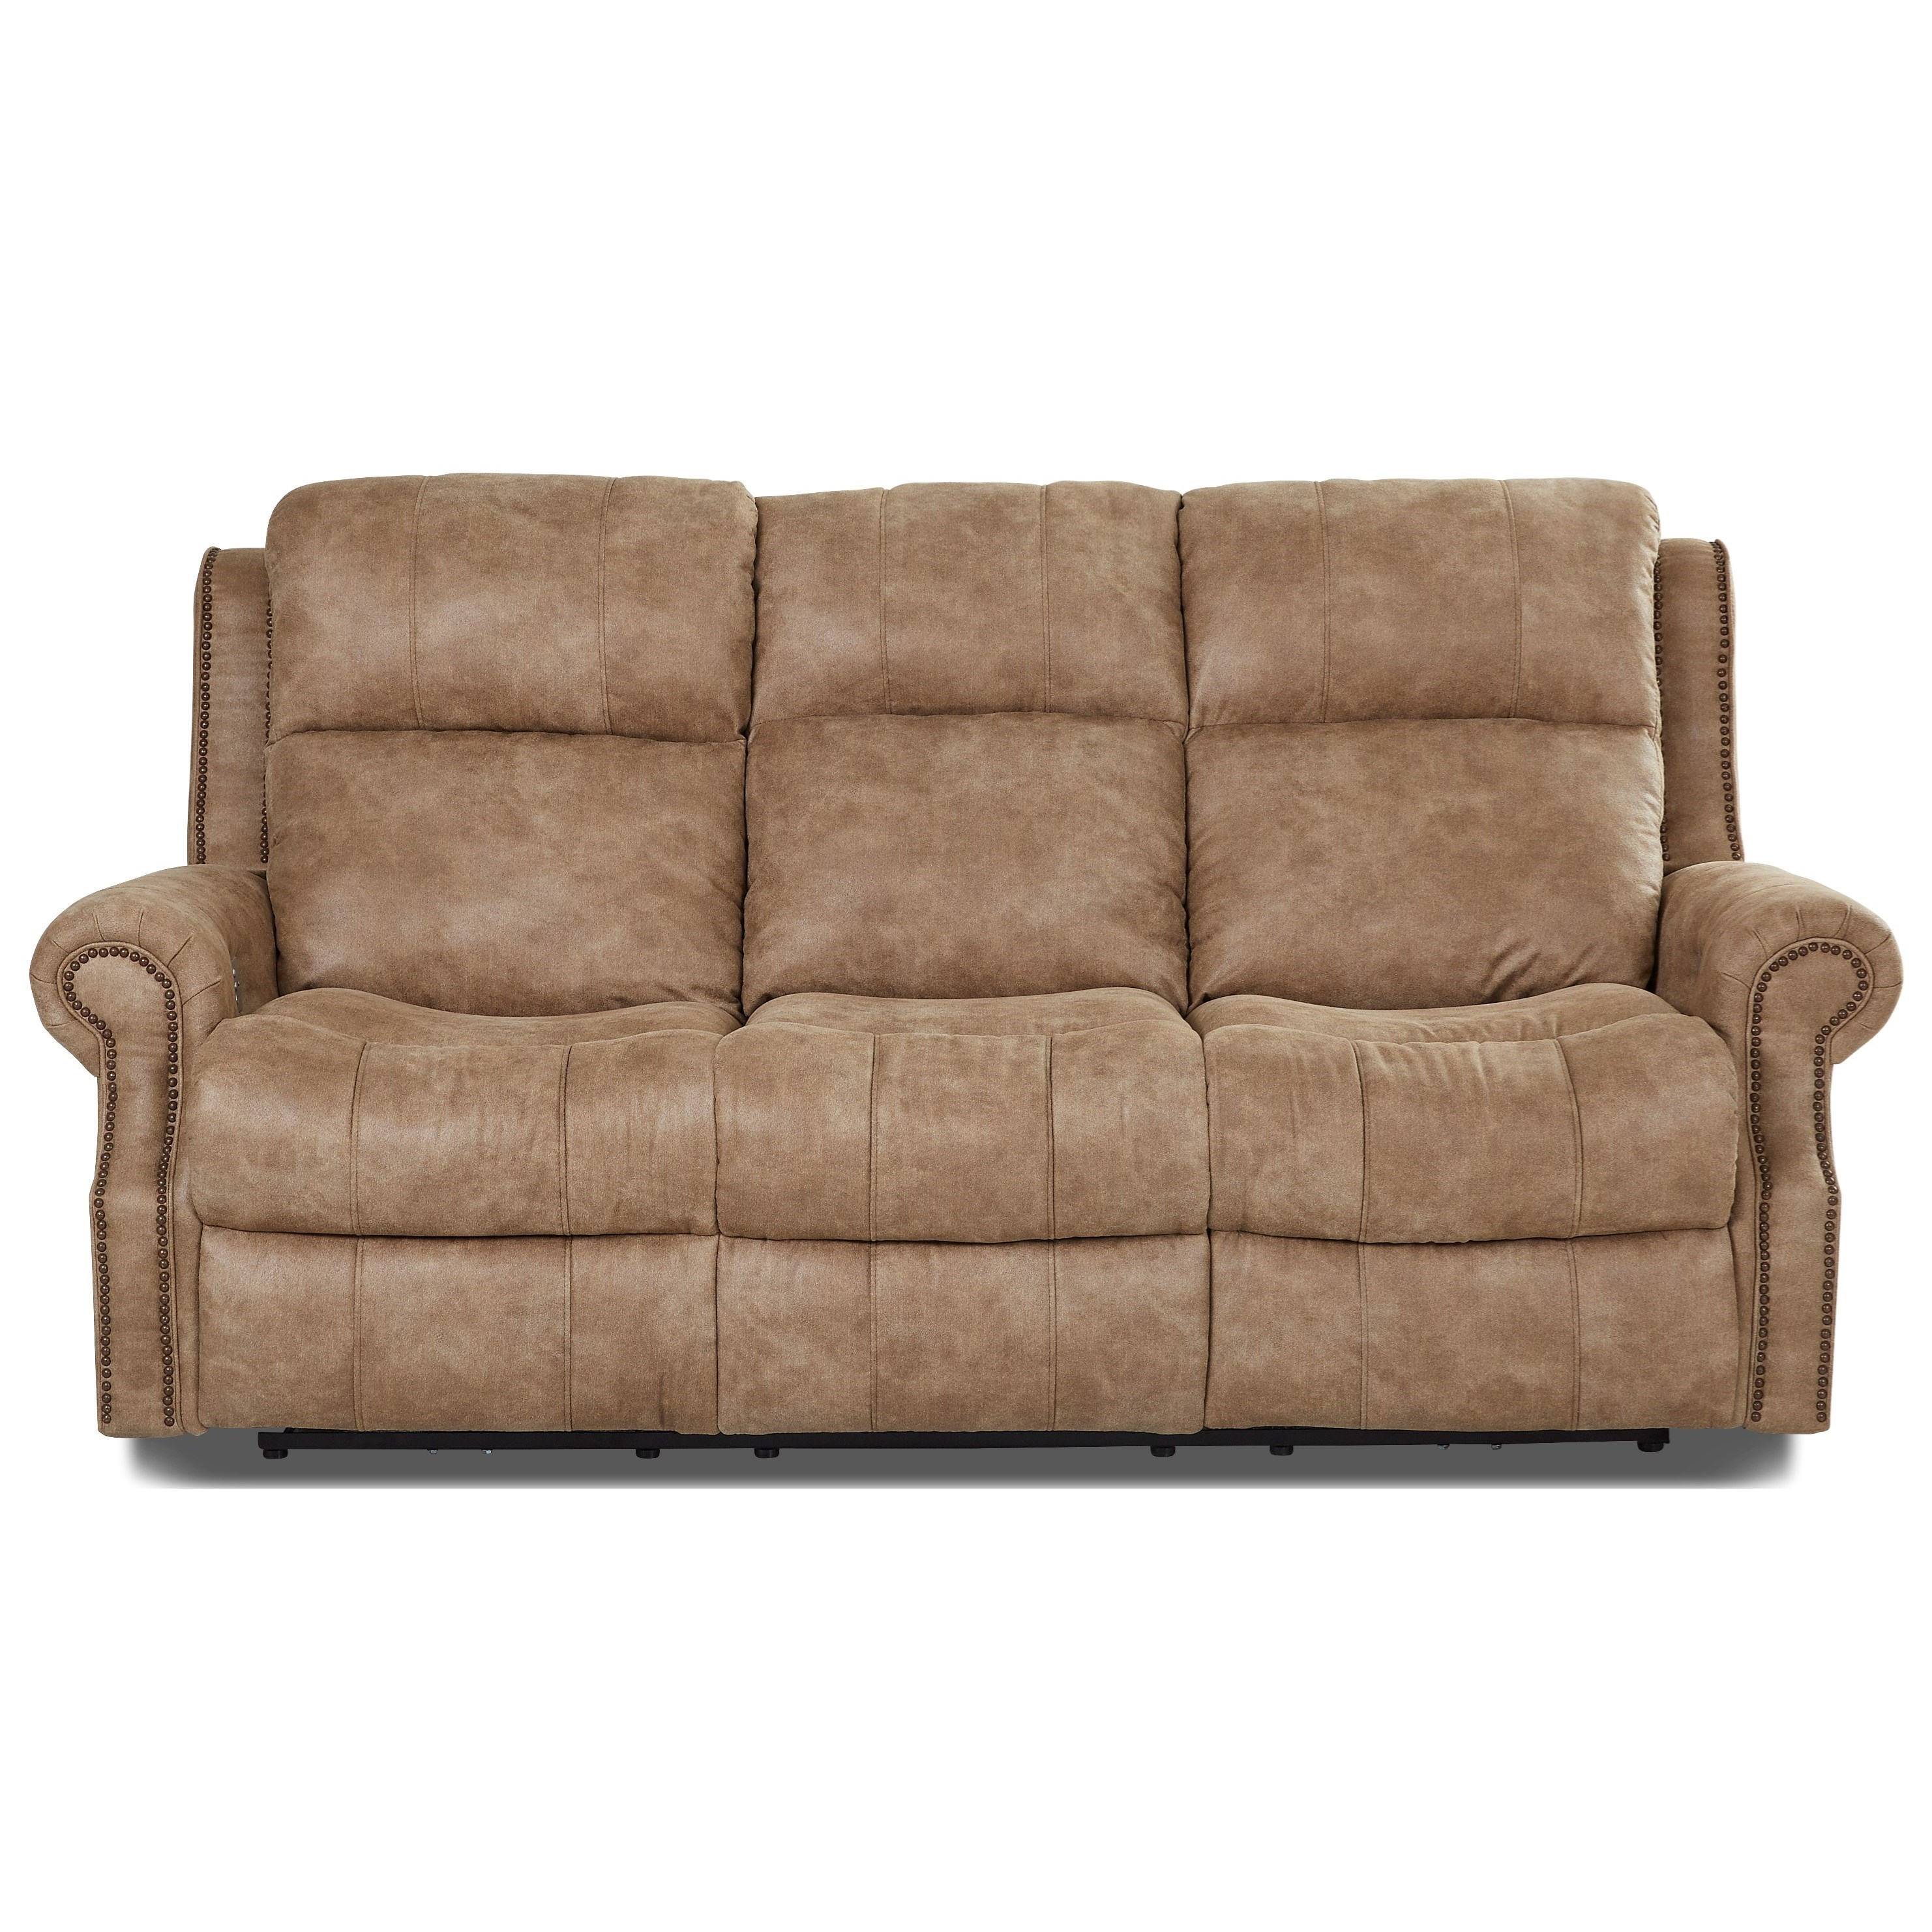 Klaussner Vivio Traditional Power Reclining Sofa with Nailheads and Power Tilt Headrest and Lumbar Support  sc 1 st  Wayside Furniture & Klaussner Vivio Traditional Power Reclining Sofa with Nailheads ... islam-shia.org